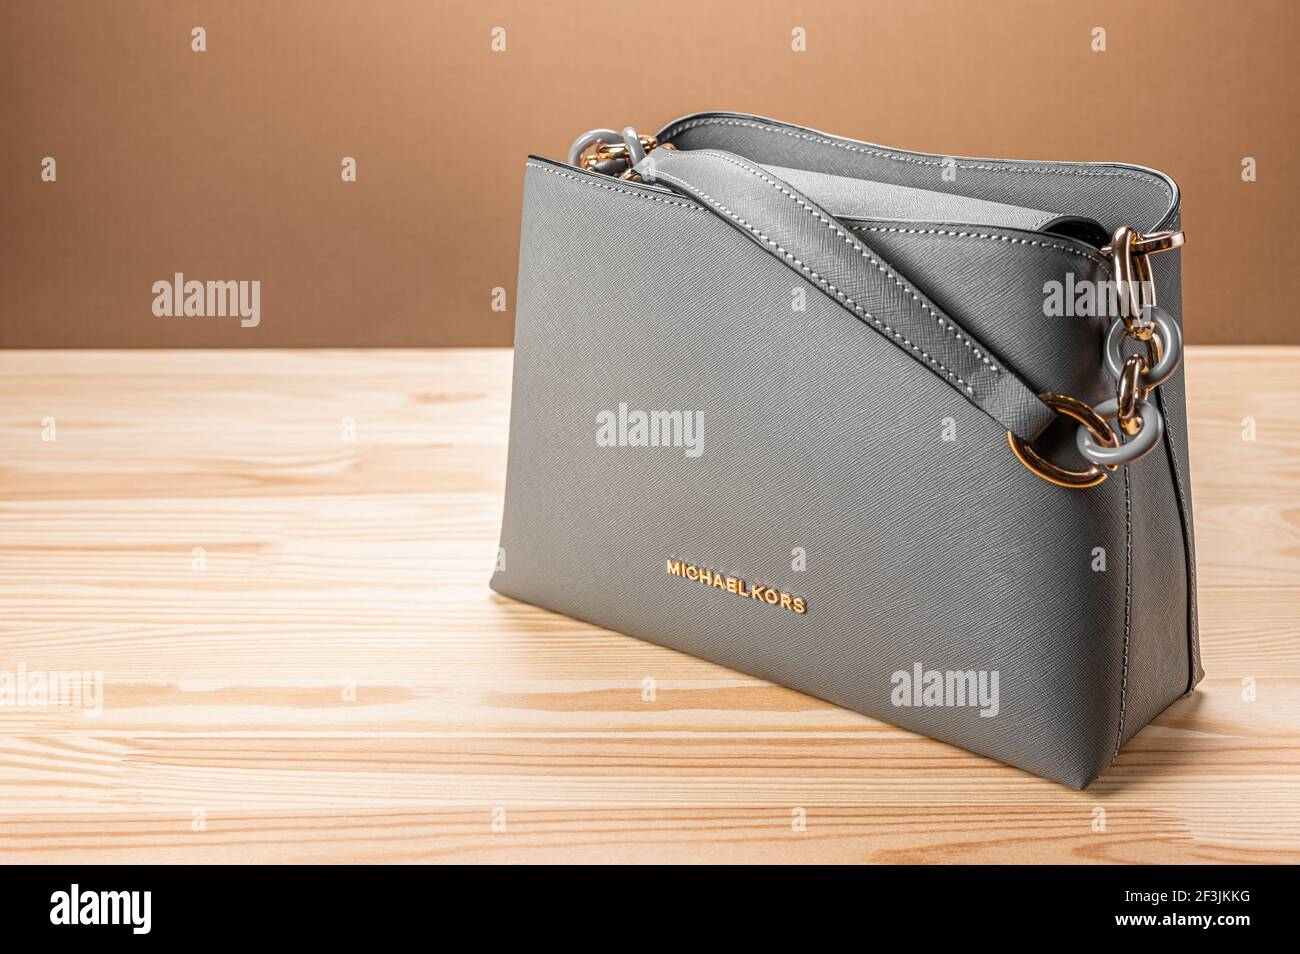 MOSCOW, RUSSIA - MARCH, 17, 2021: new model leather grey handbag ...